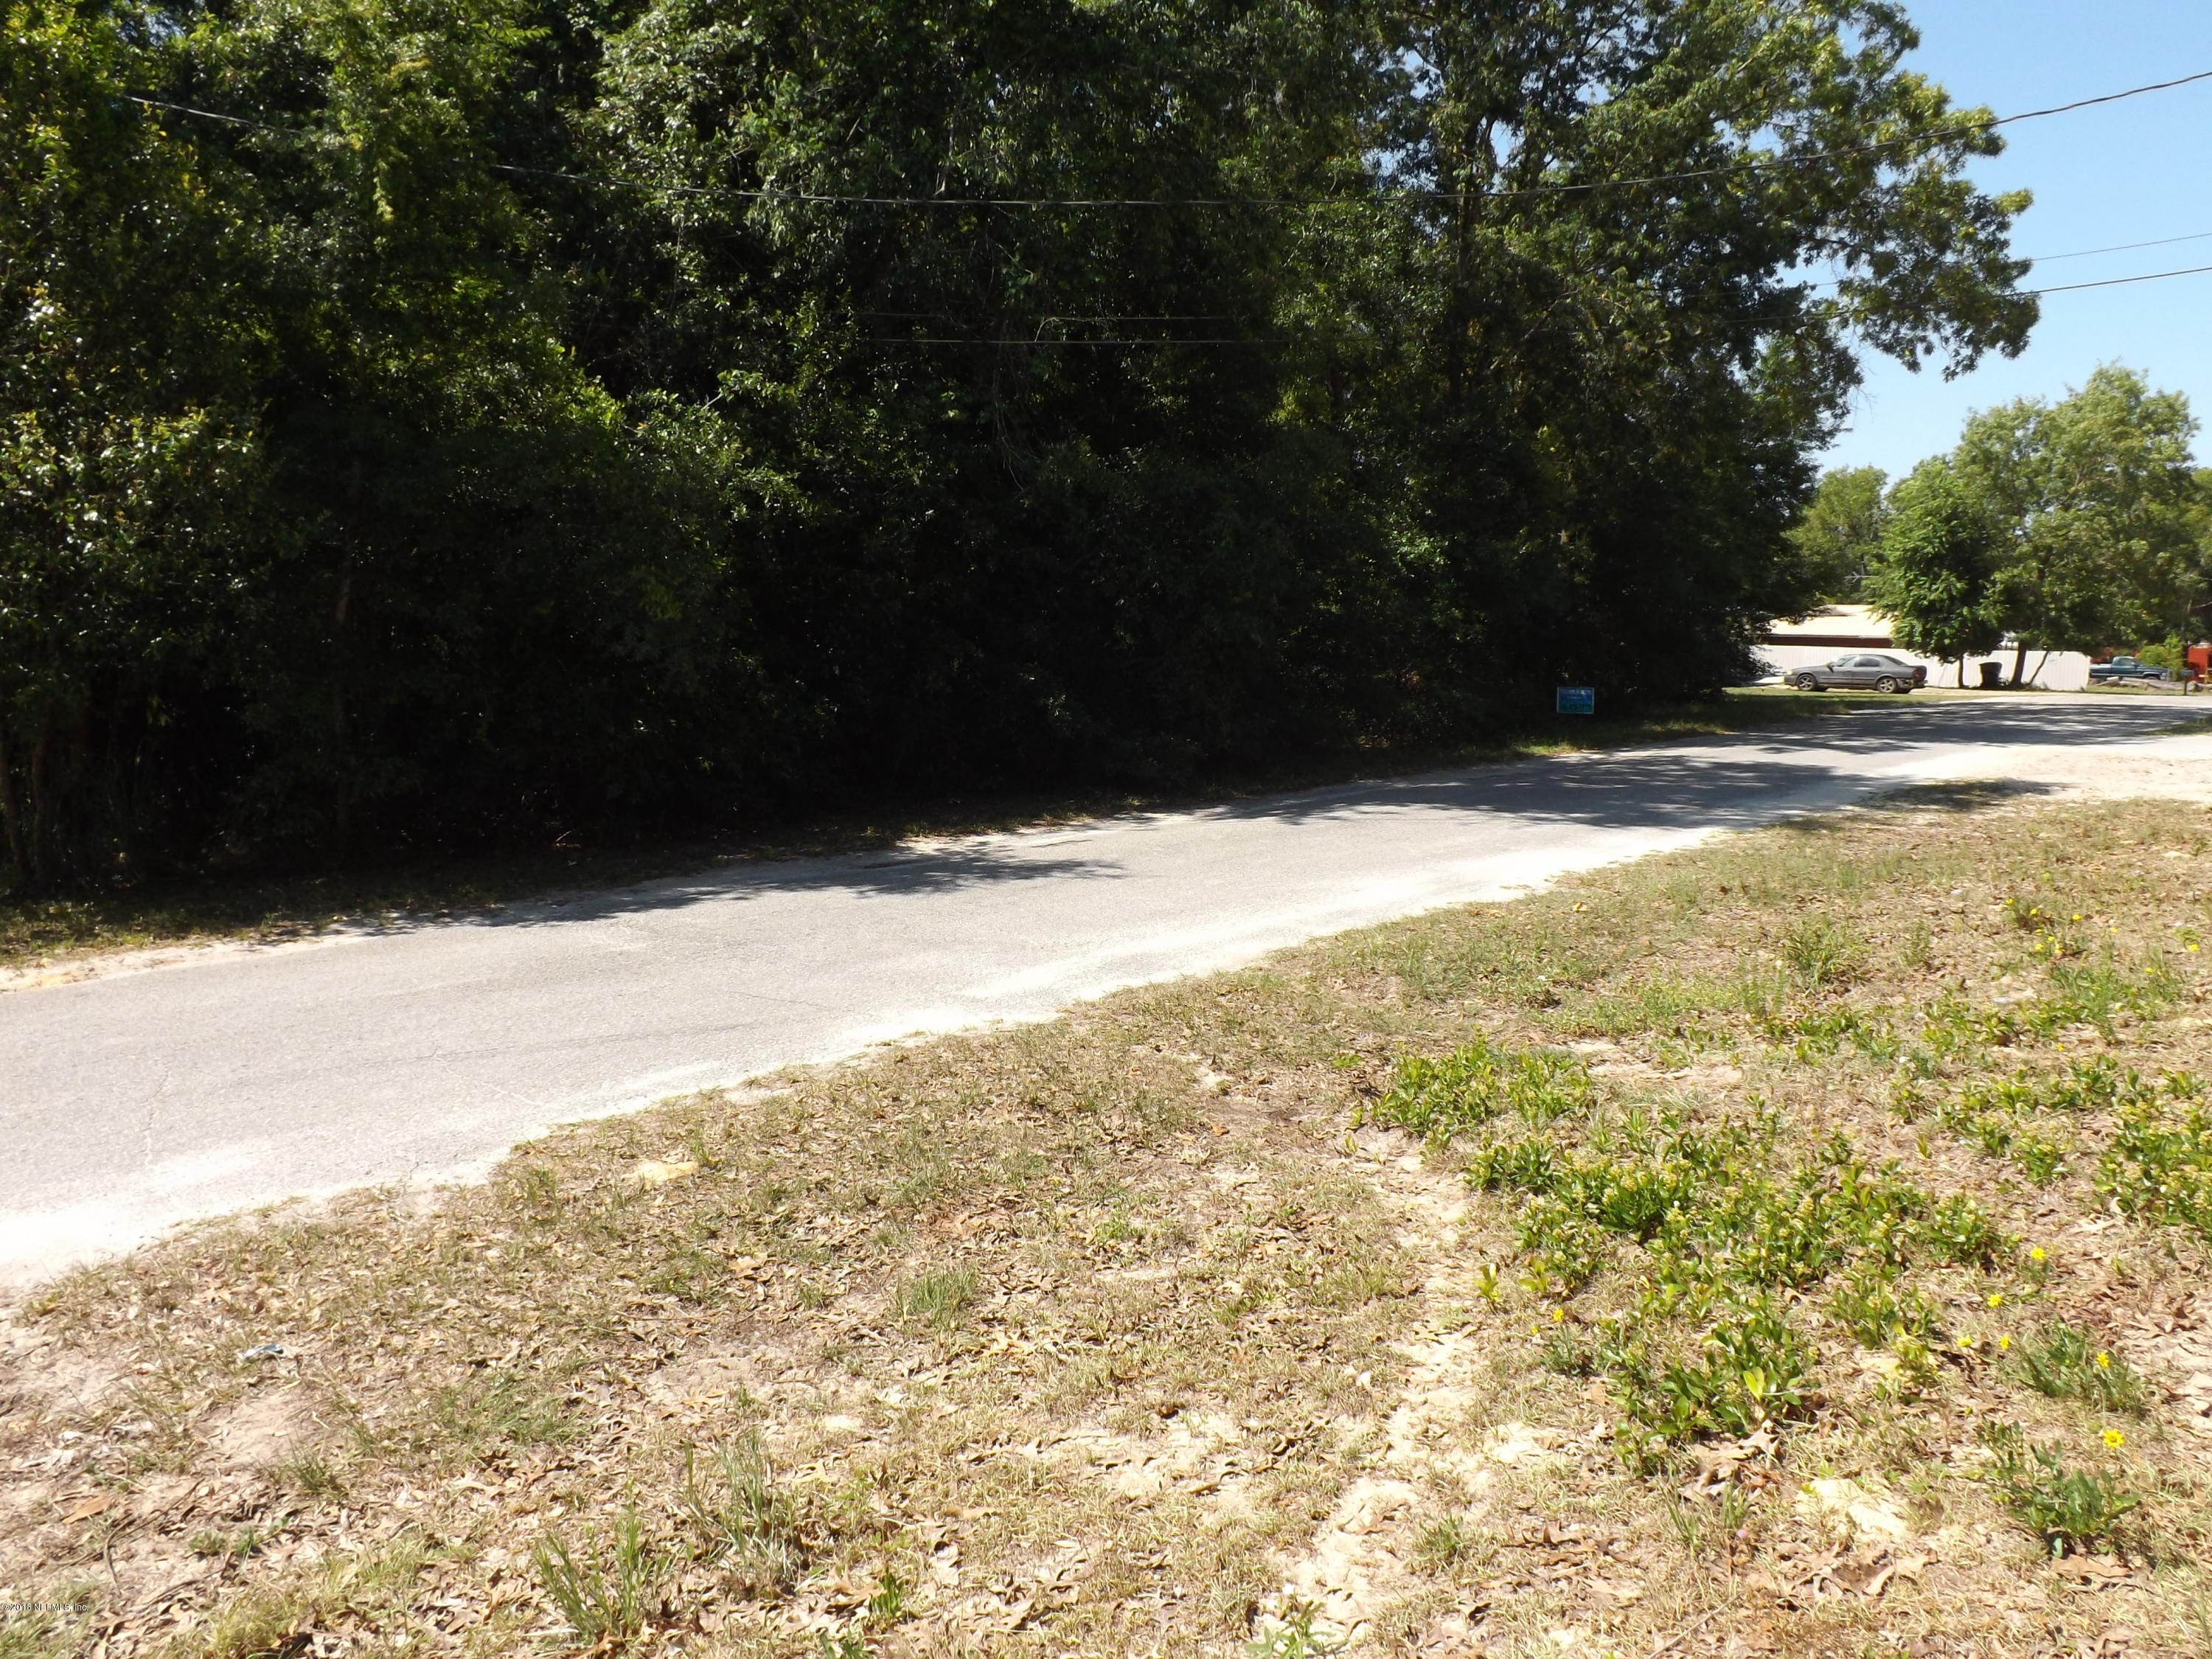 000 43, KEYSTONE HEIGHTS, FLORIDA 32656, ,Vacant land,For sale,43,935732